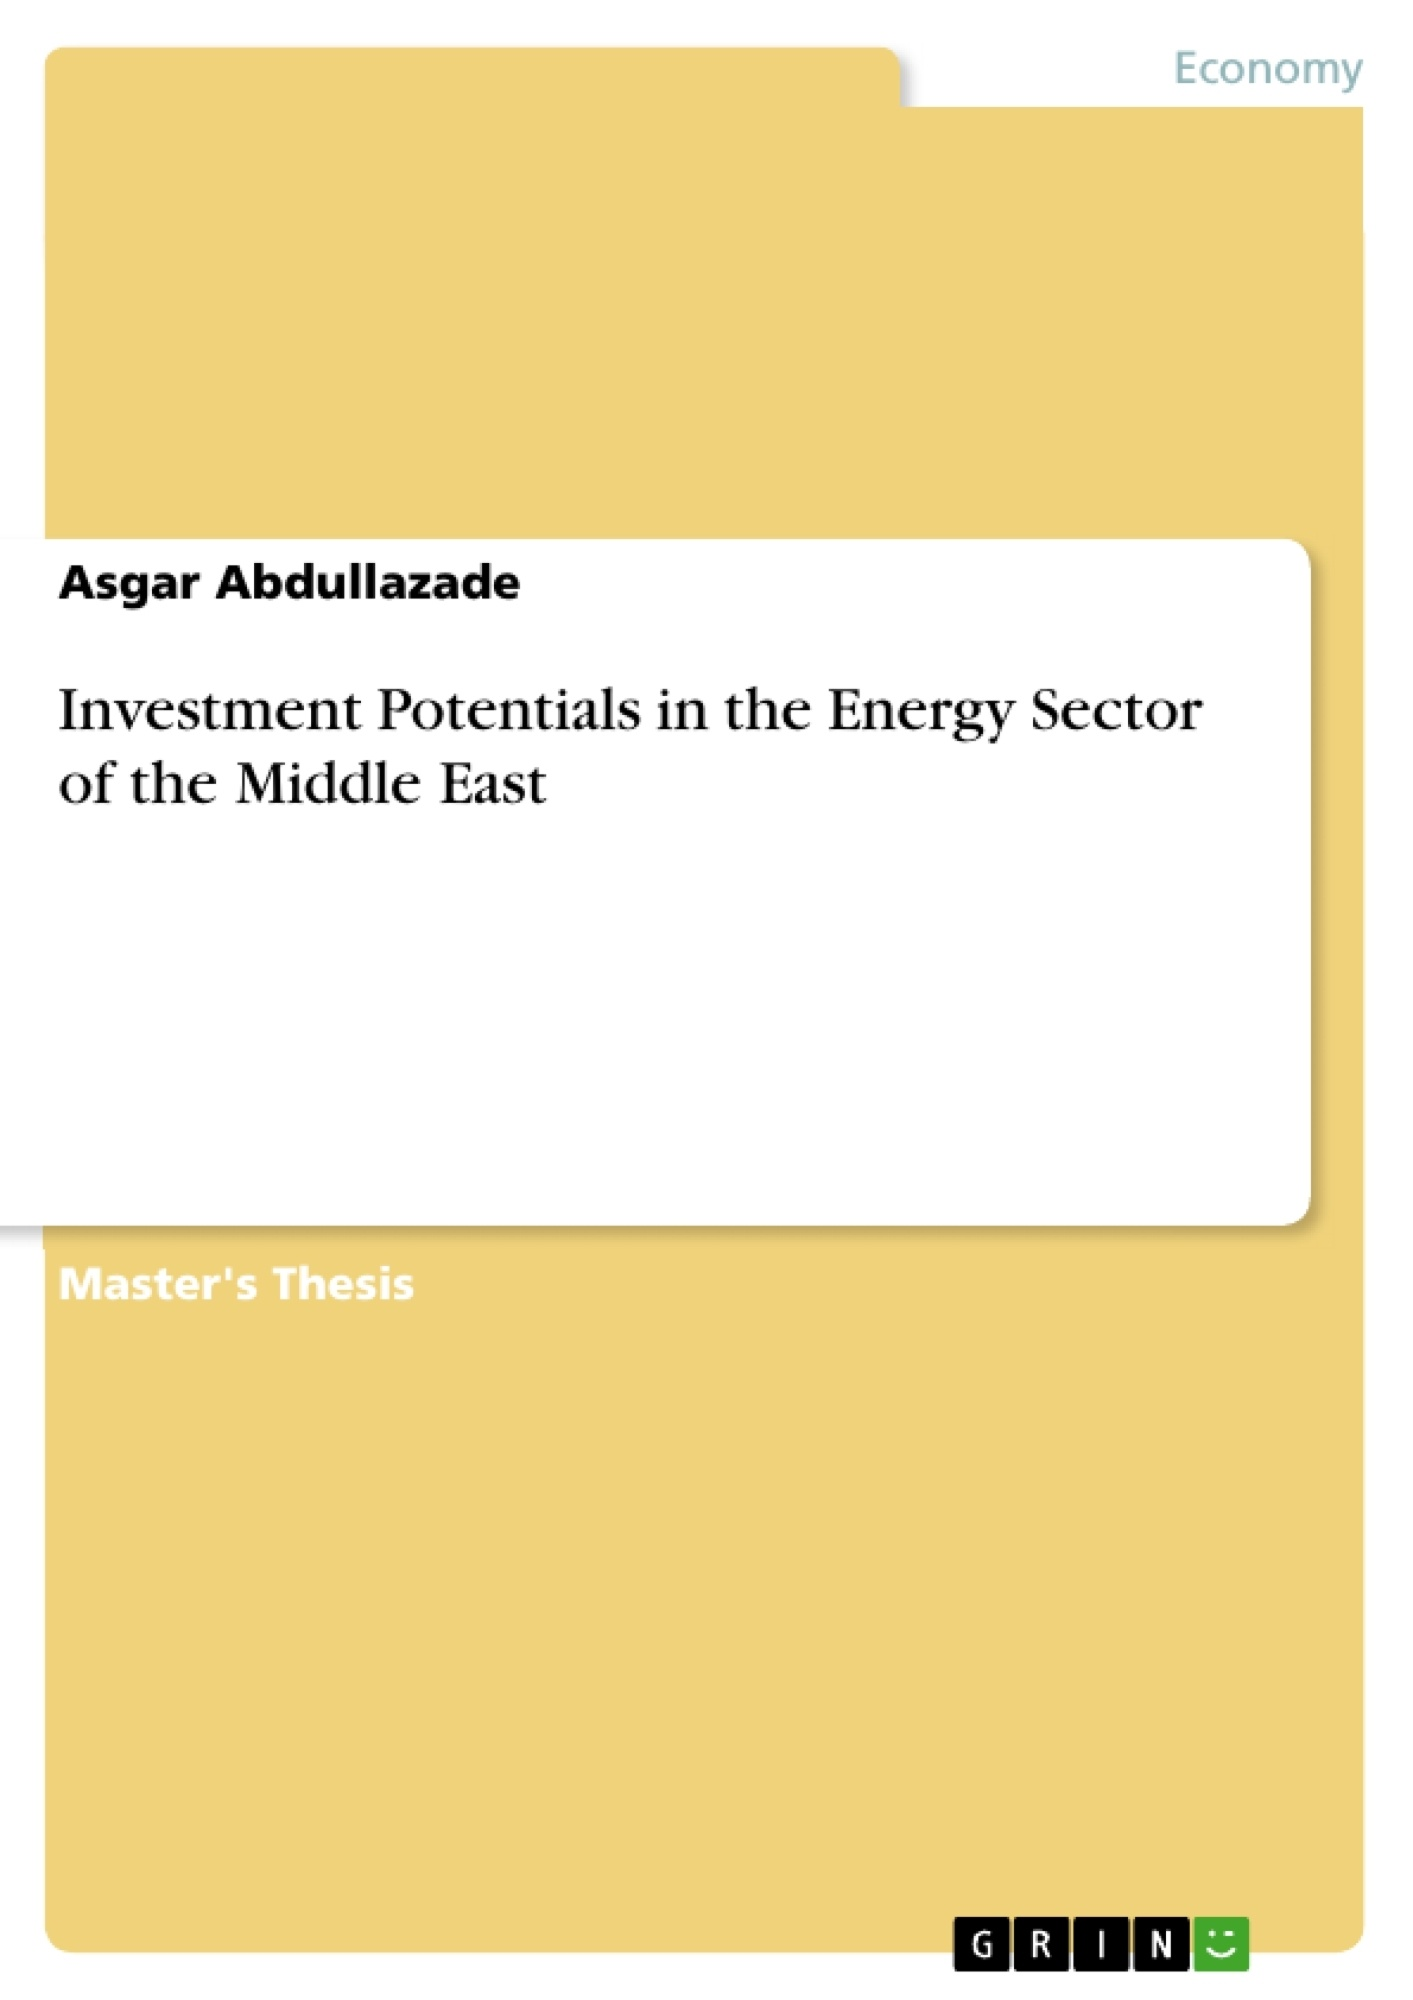 Title: Investment Potentials in the Energy Sector of the Middle East